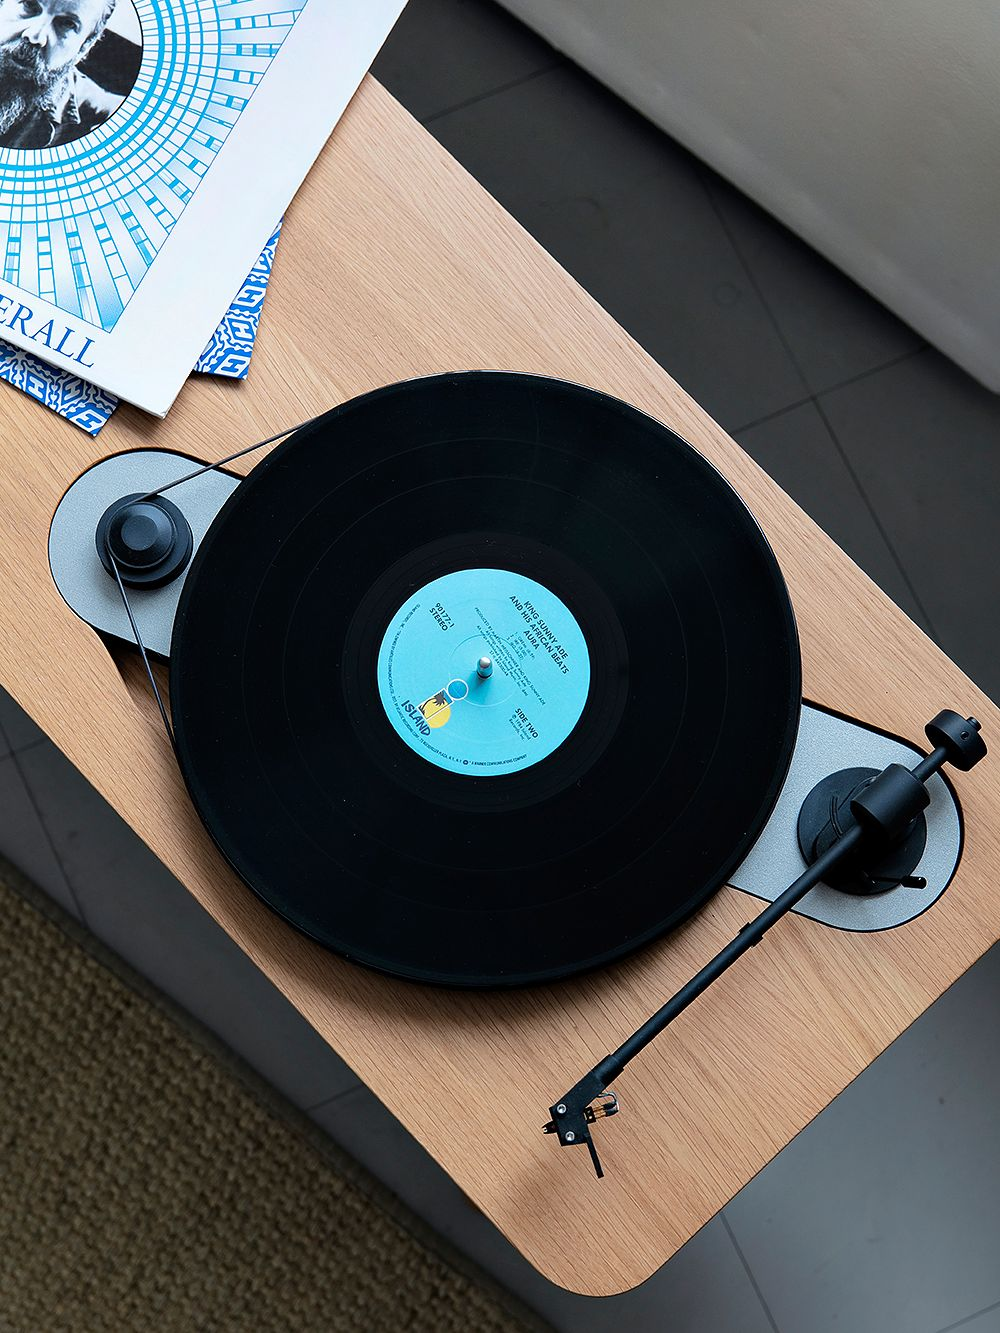 Harri Koskinen Turntable